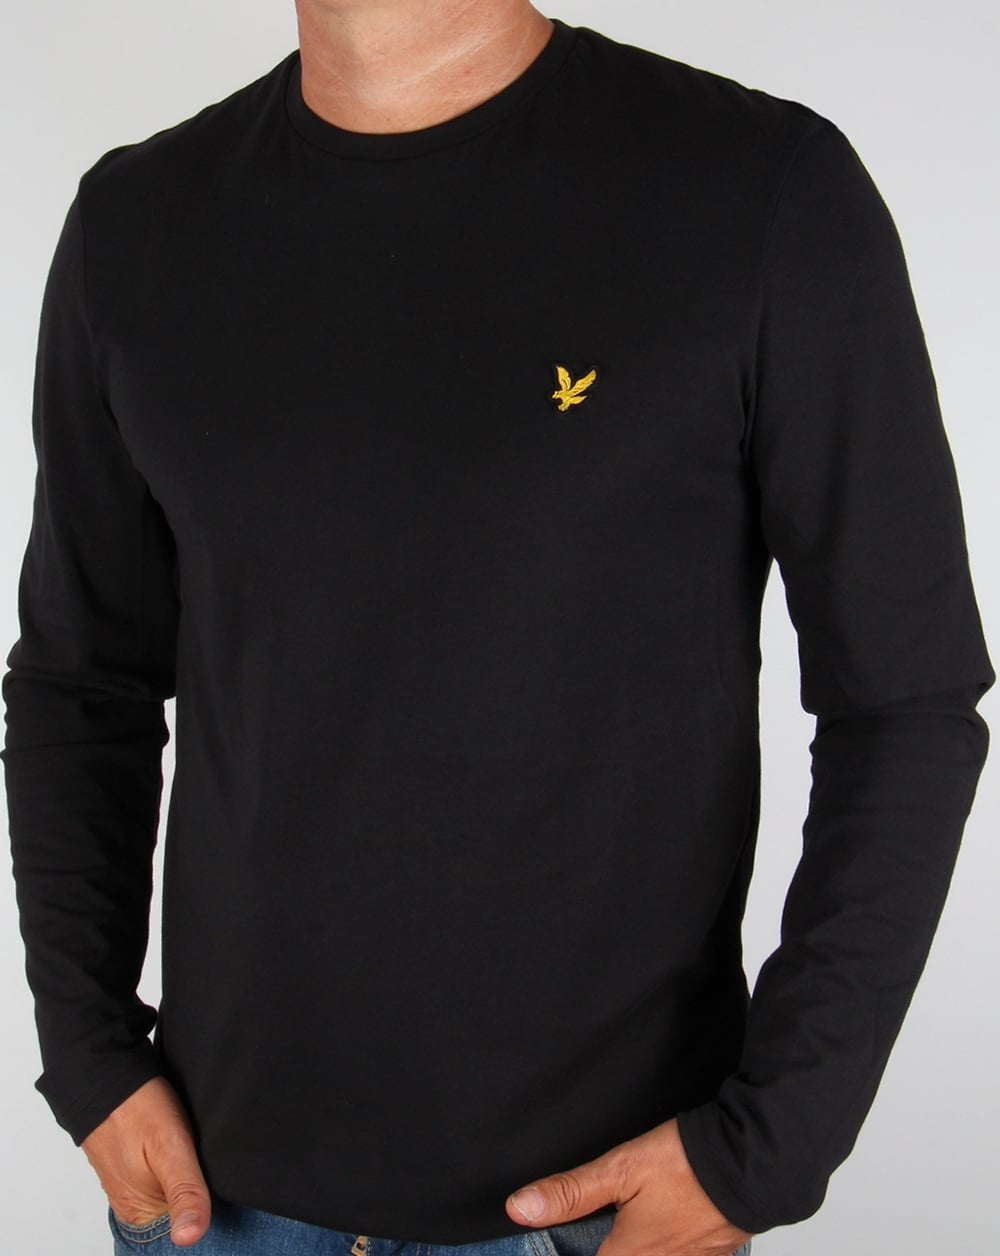 lyle and scott long sleeve t shirt black tee crew neck men 39 s. Black Bedroom Furniture Sets. Home Design Ideas